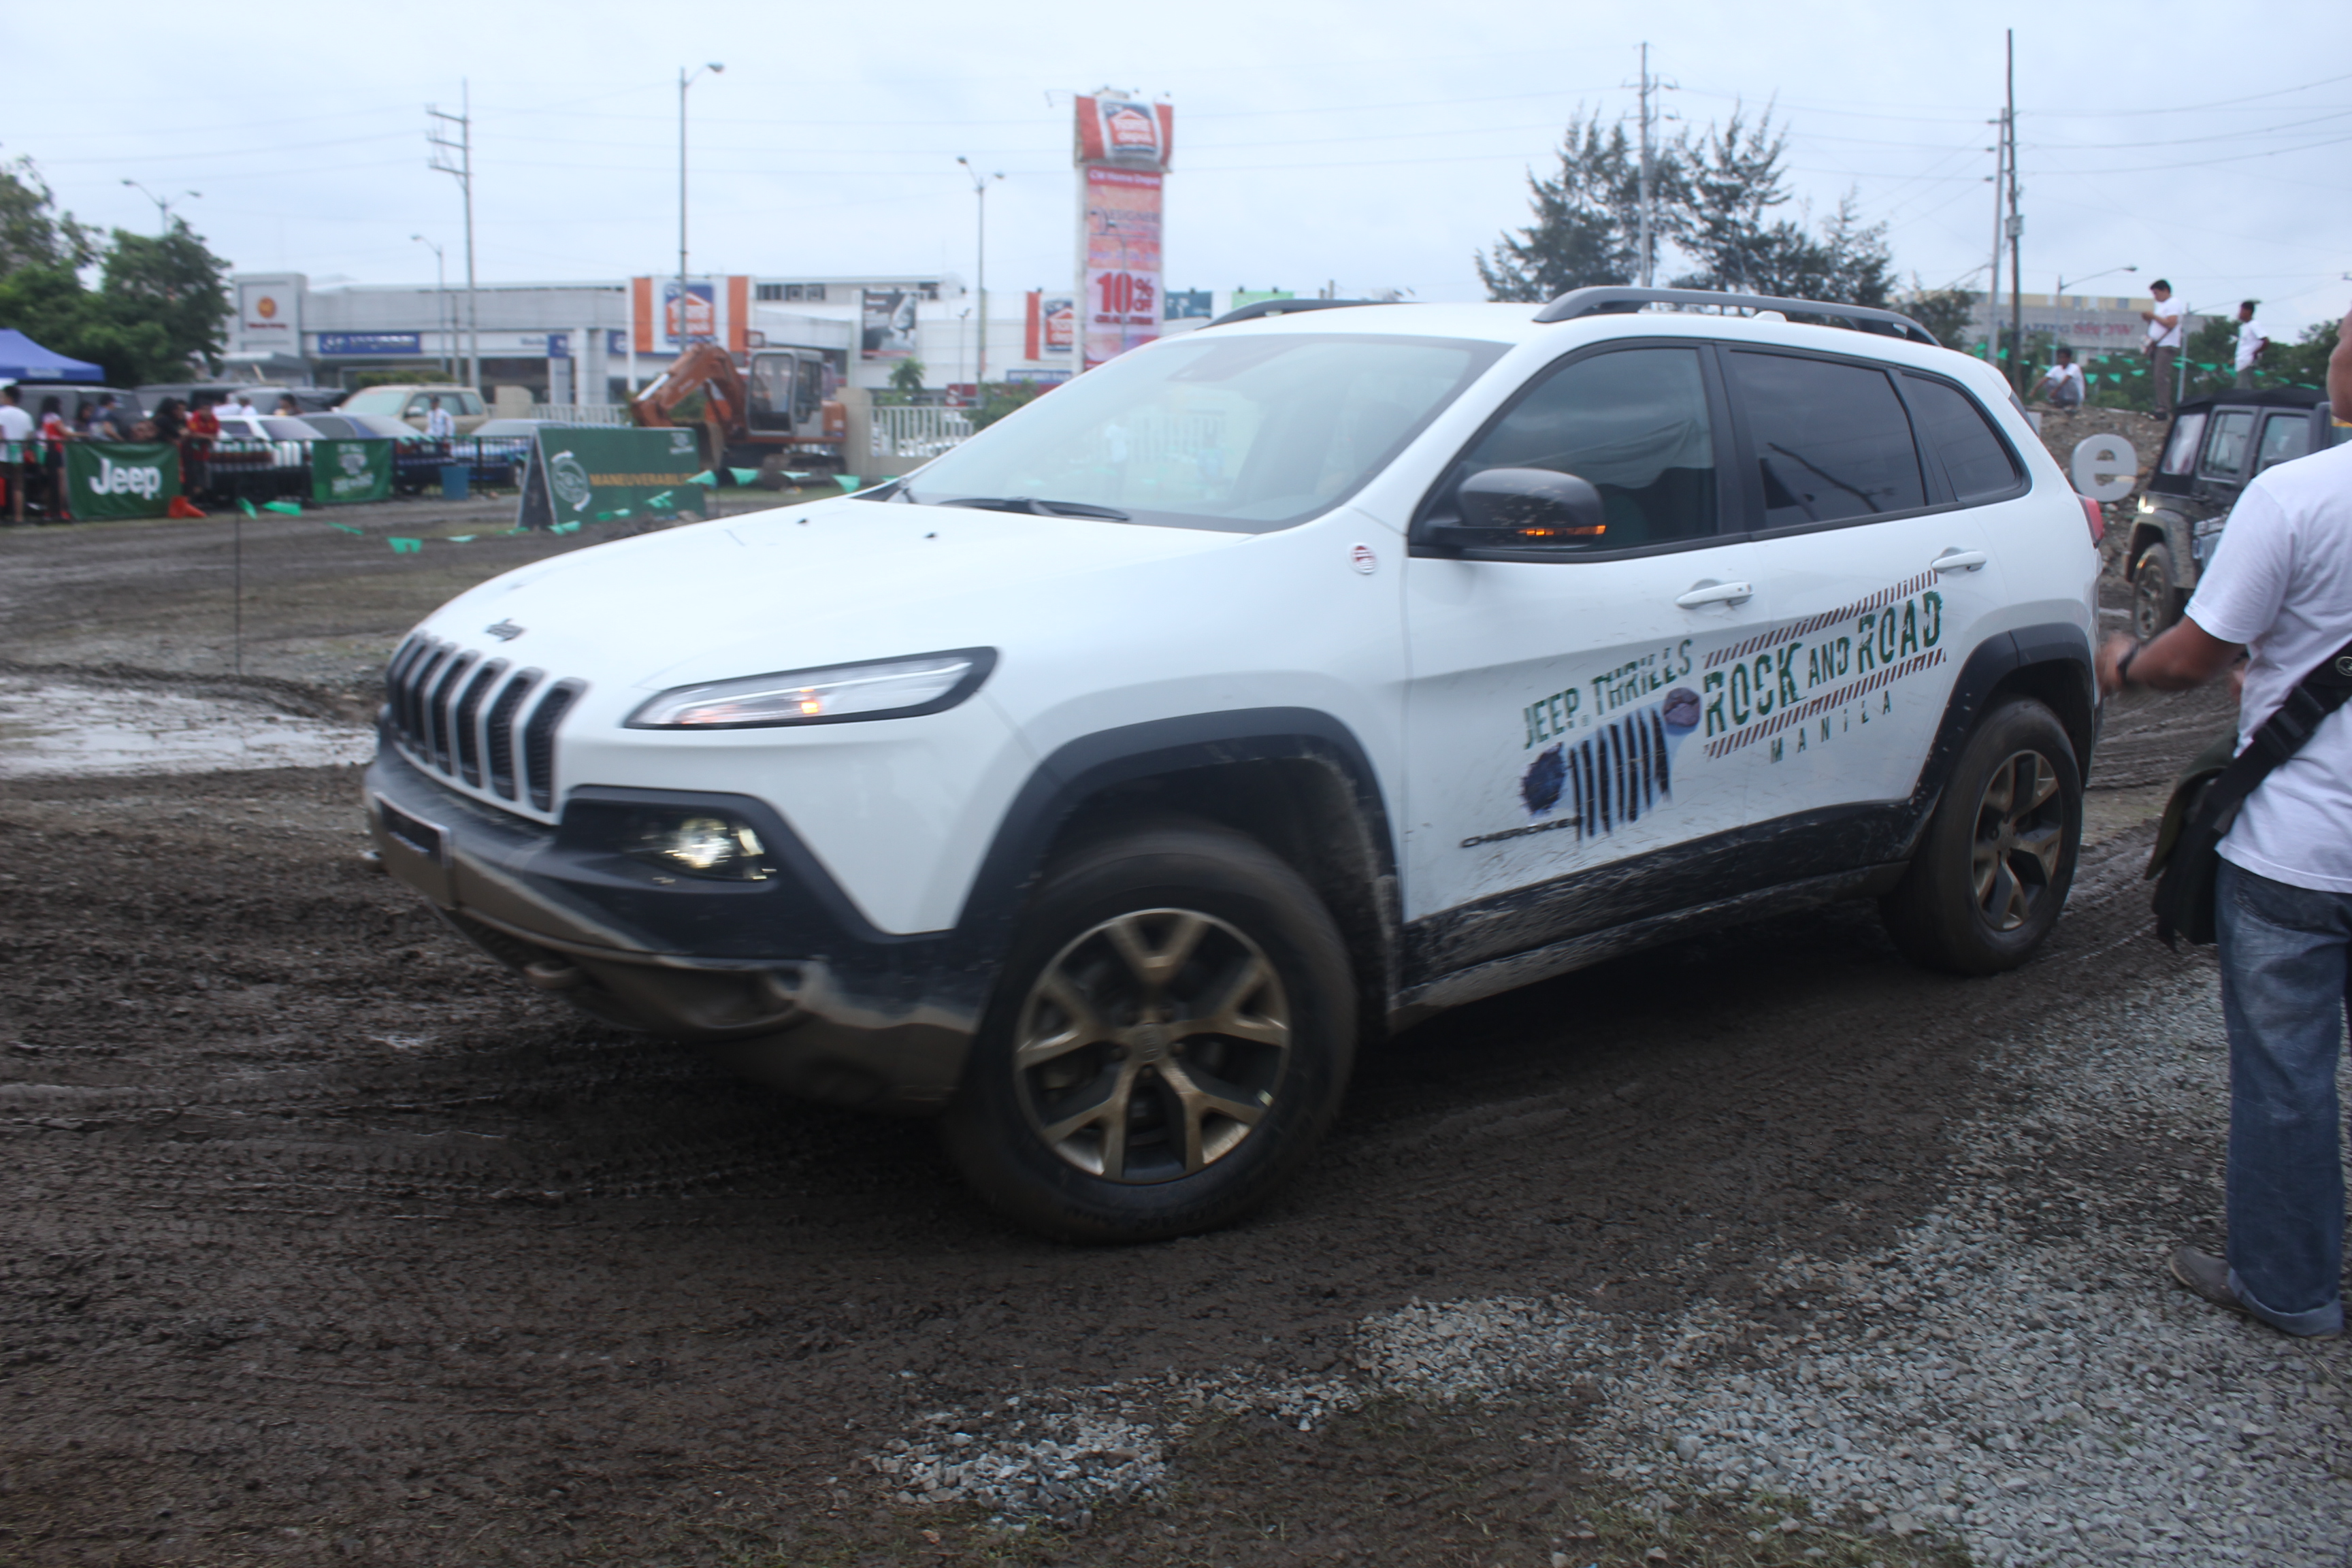 dip plasti trailhawk jeep tire cherokee ideas adaawdy and with rim forums black rims